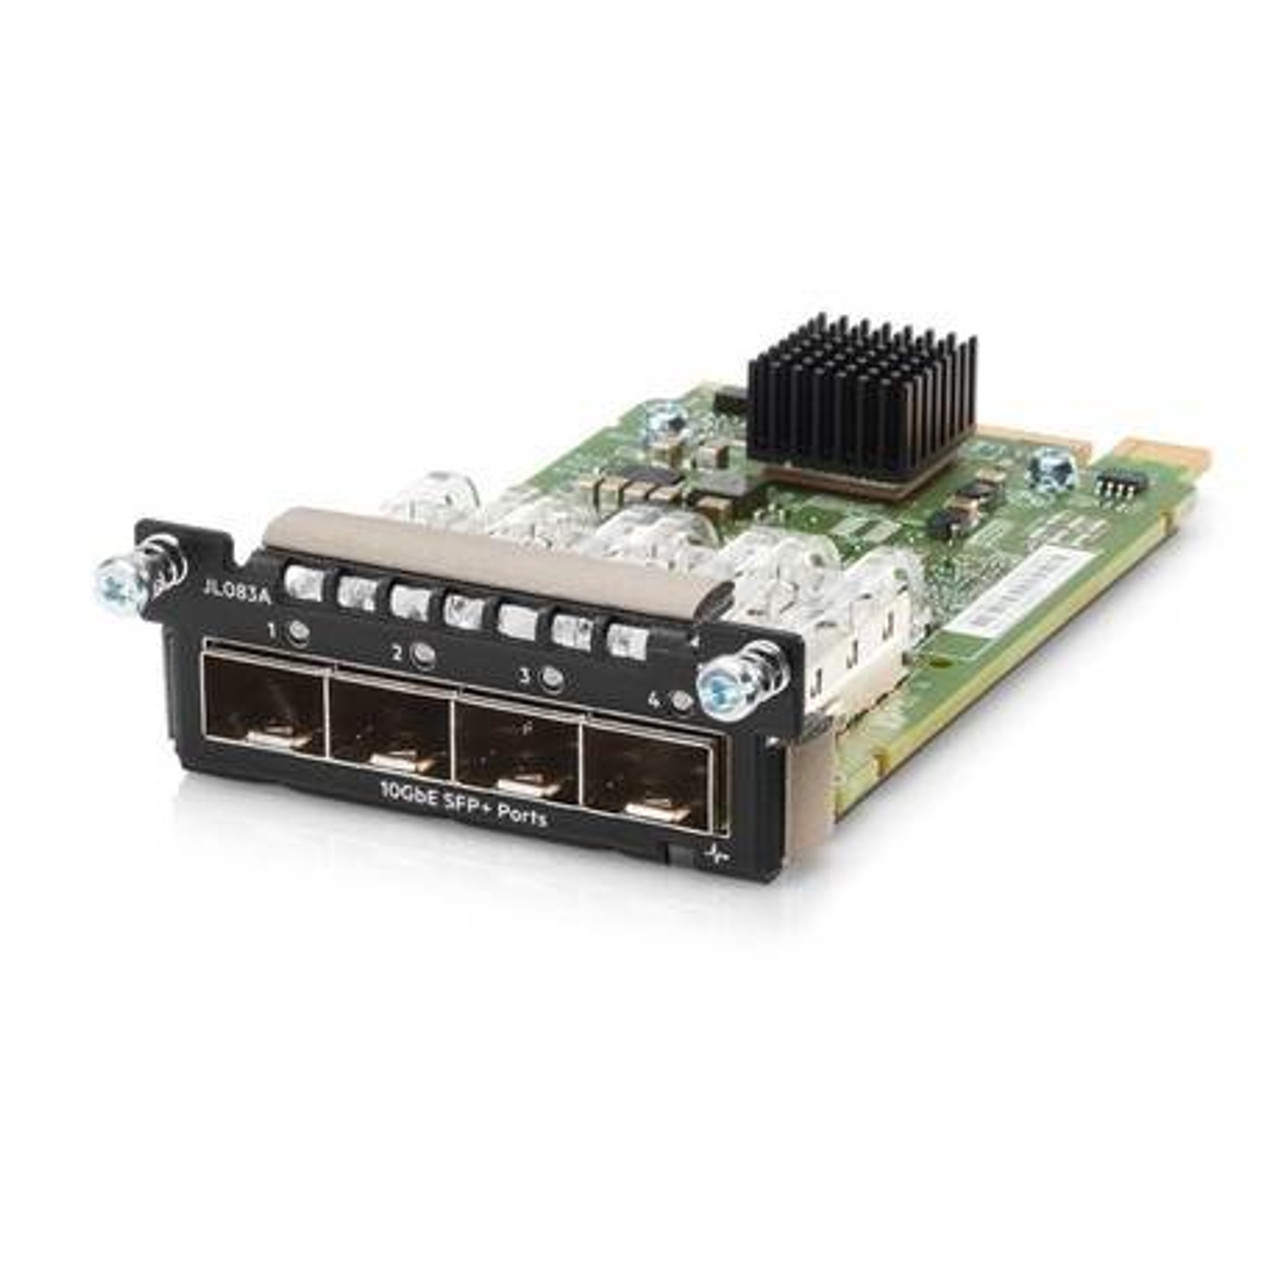 Image for HPE 4-port 10GbE SFP+ Module for the Aruba 3810M Switch CX Computer Superstore